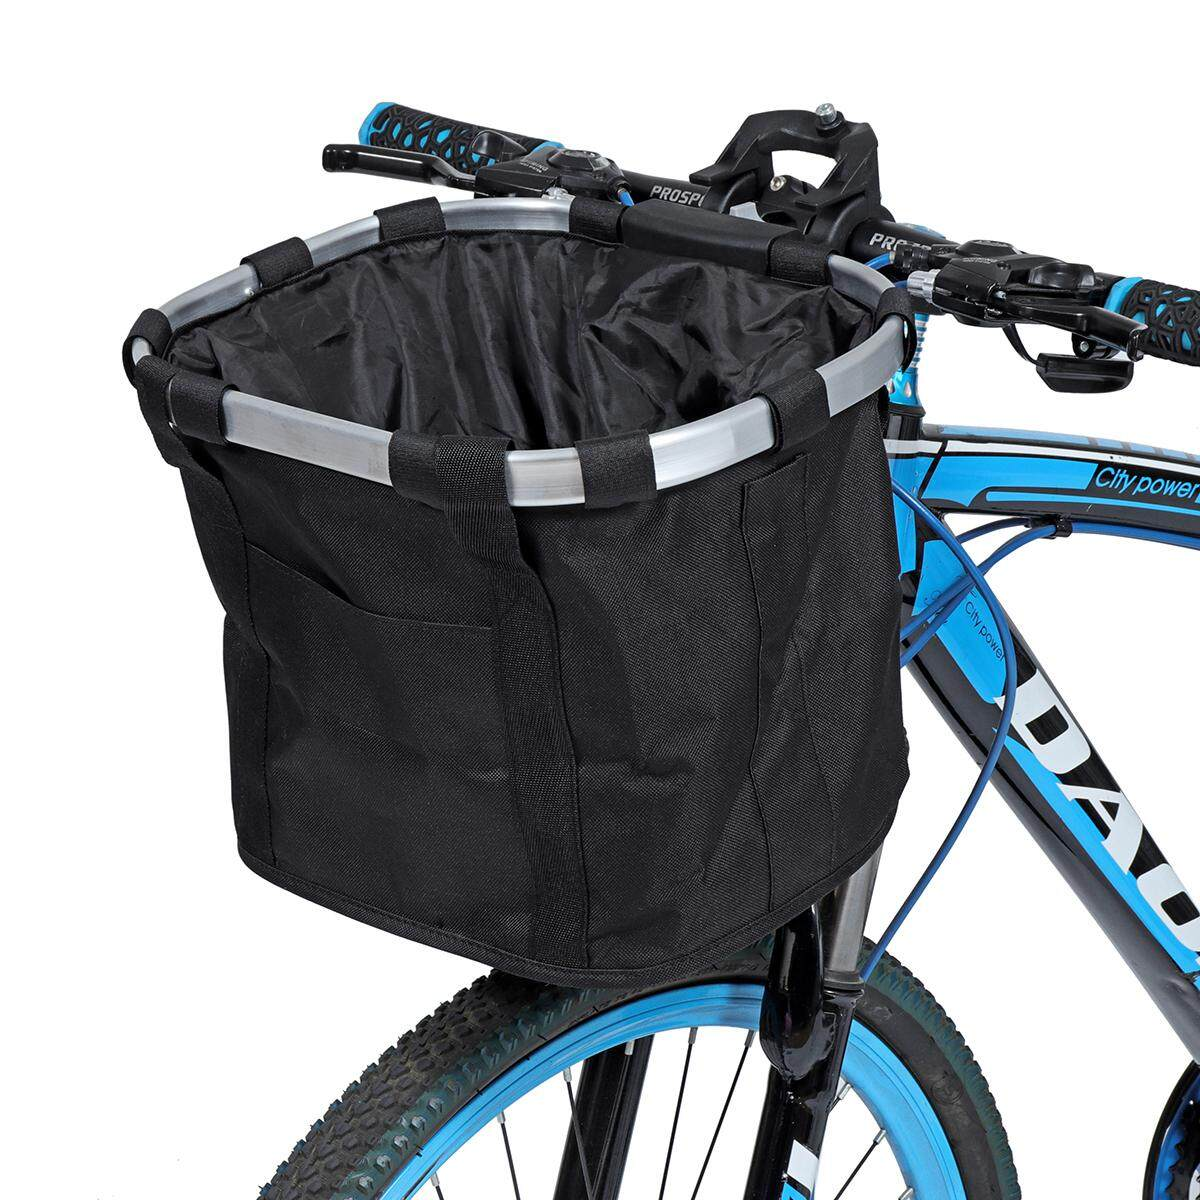 Storage Front Carrying Bag Basket Package For Xiaomi Qicycle E-Bike Scooter By Glimmer.